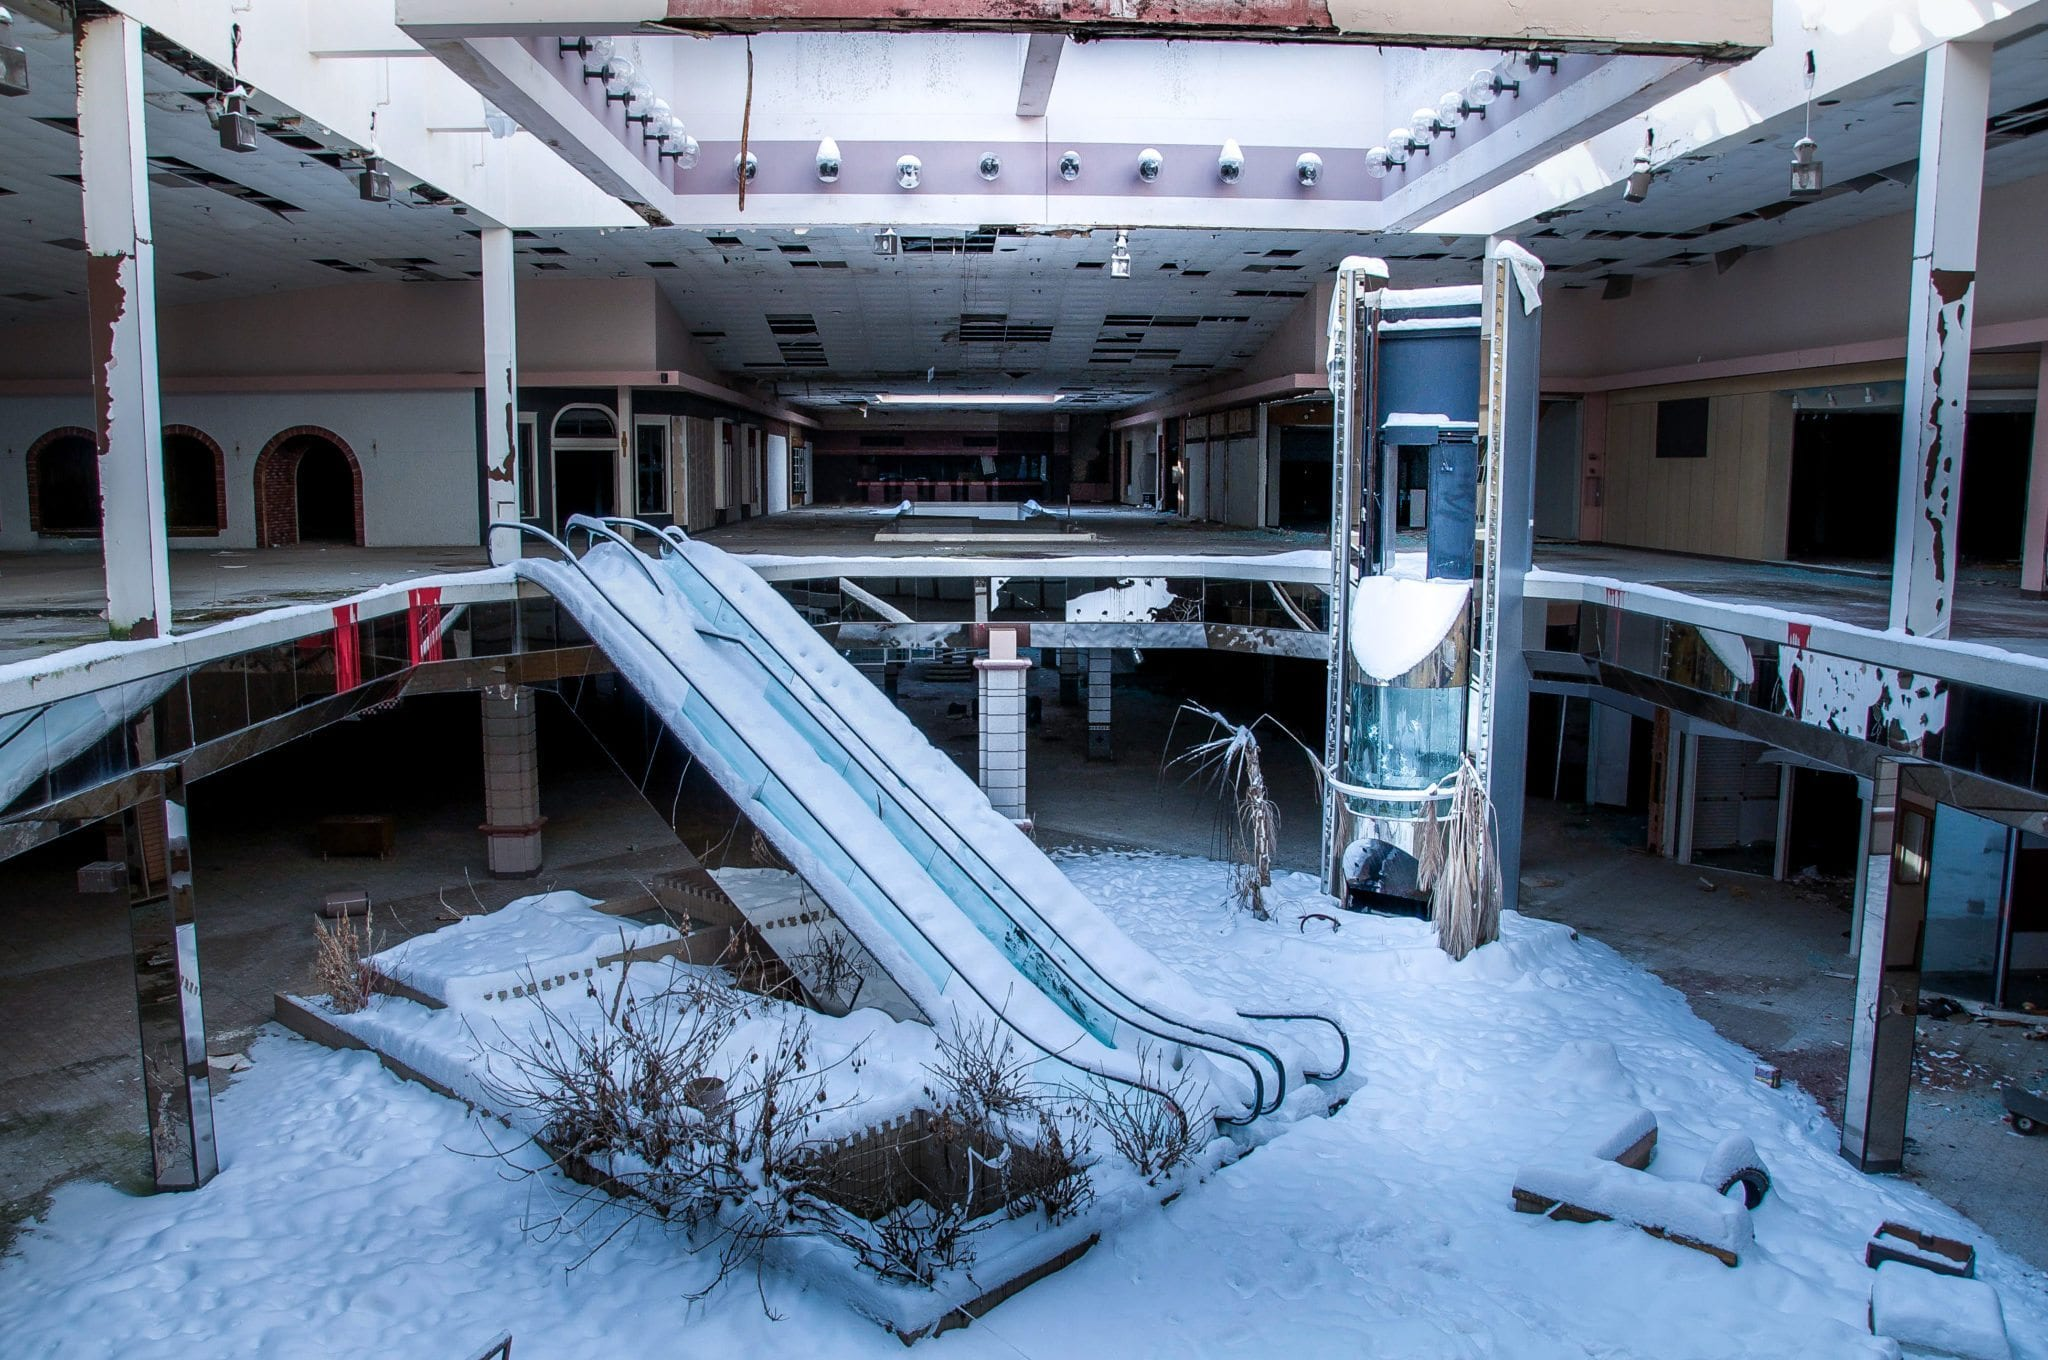 38 Bleak Photos of Abandoned shopping malls pictures